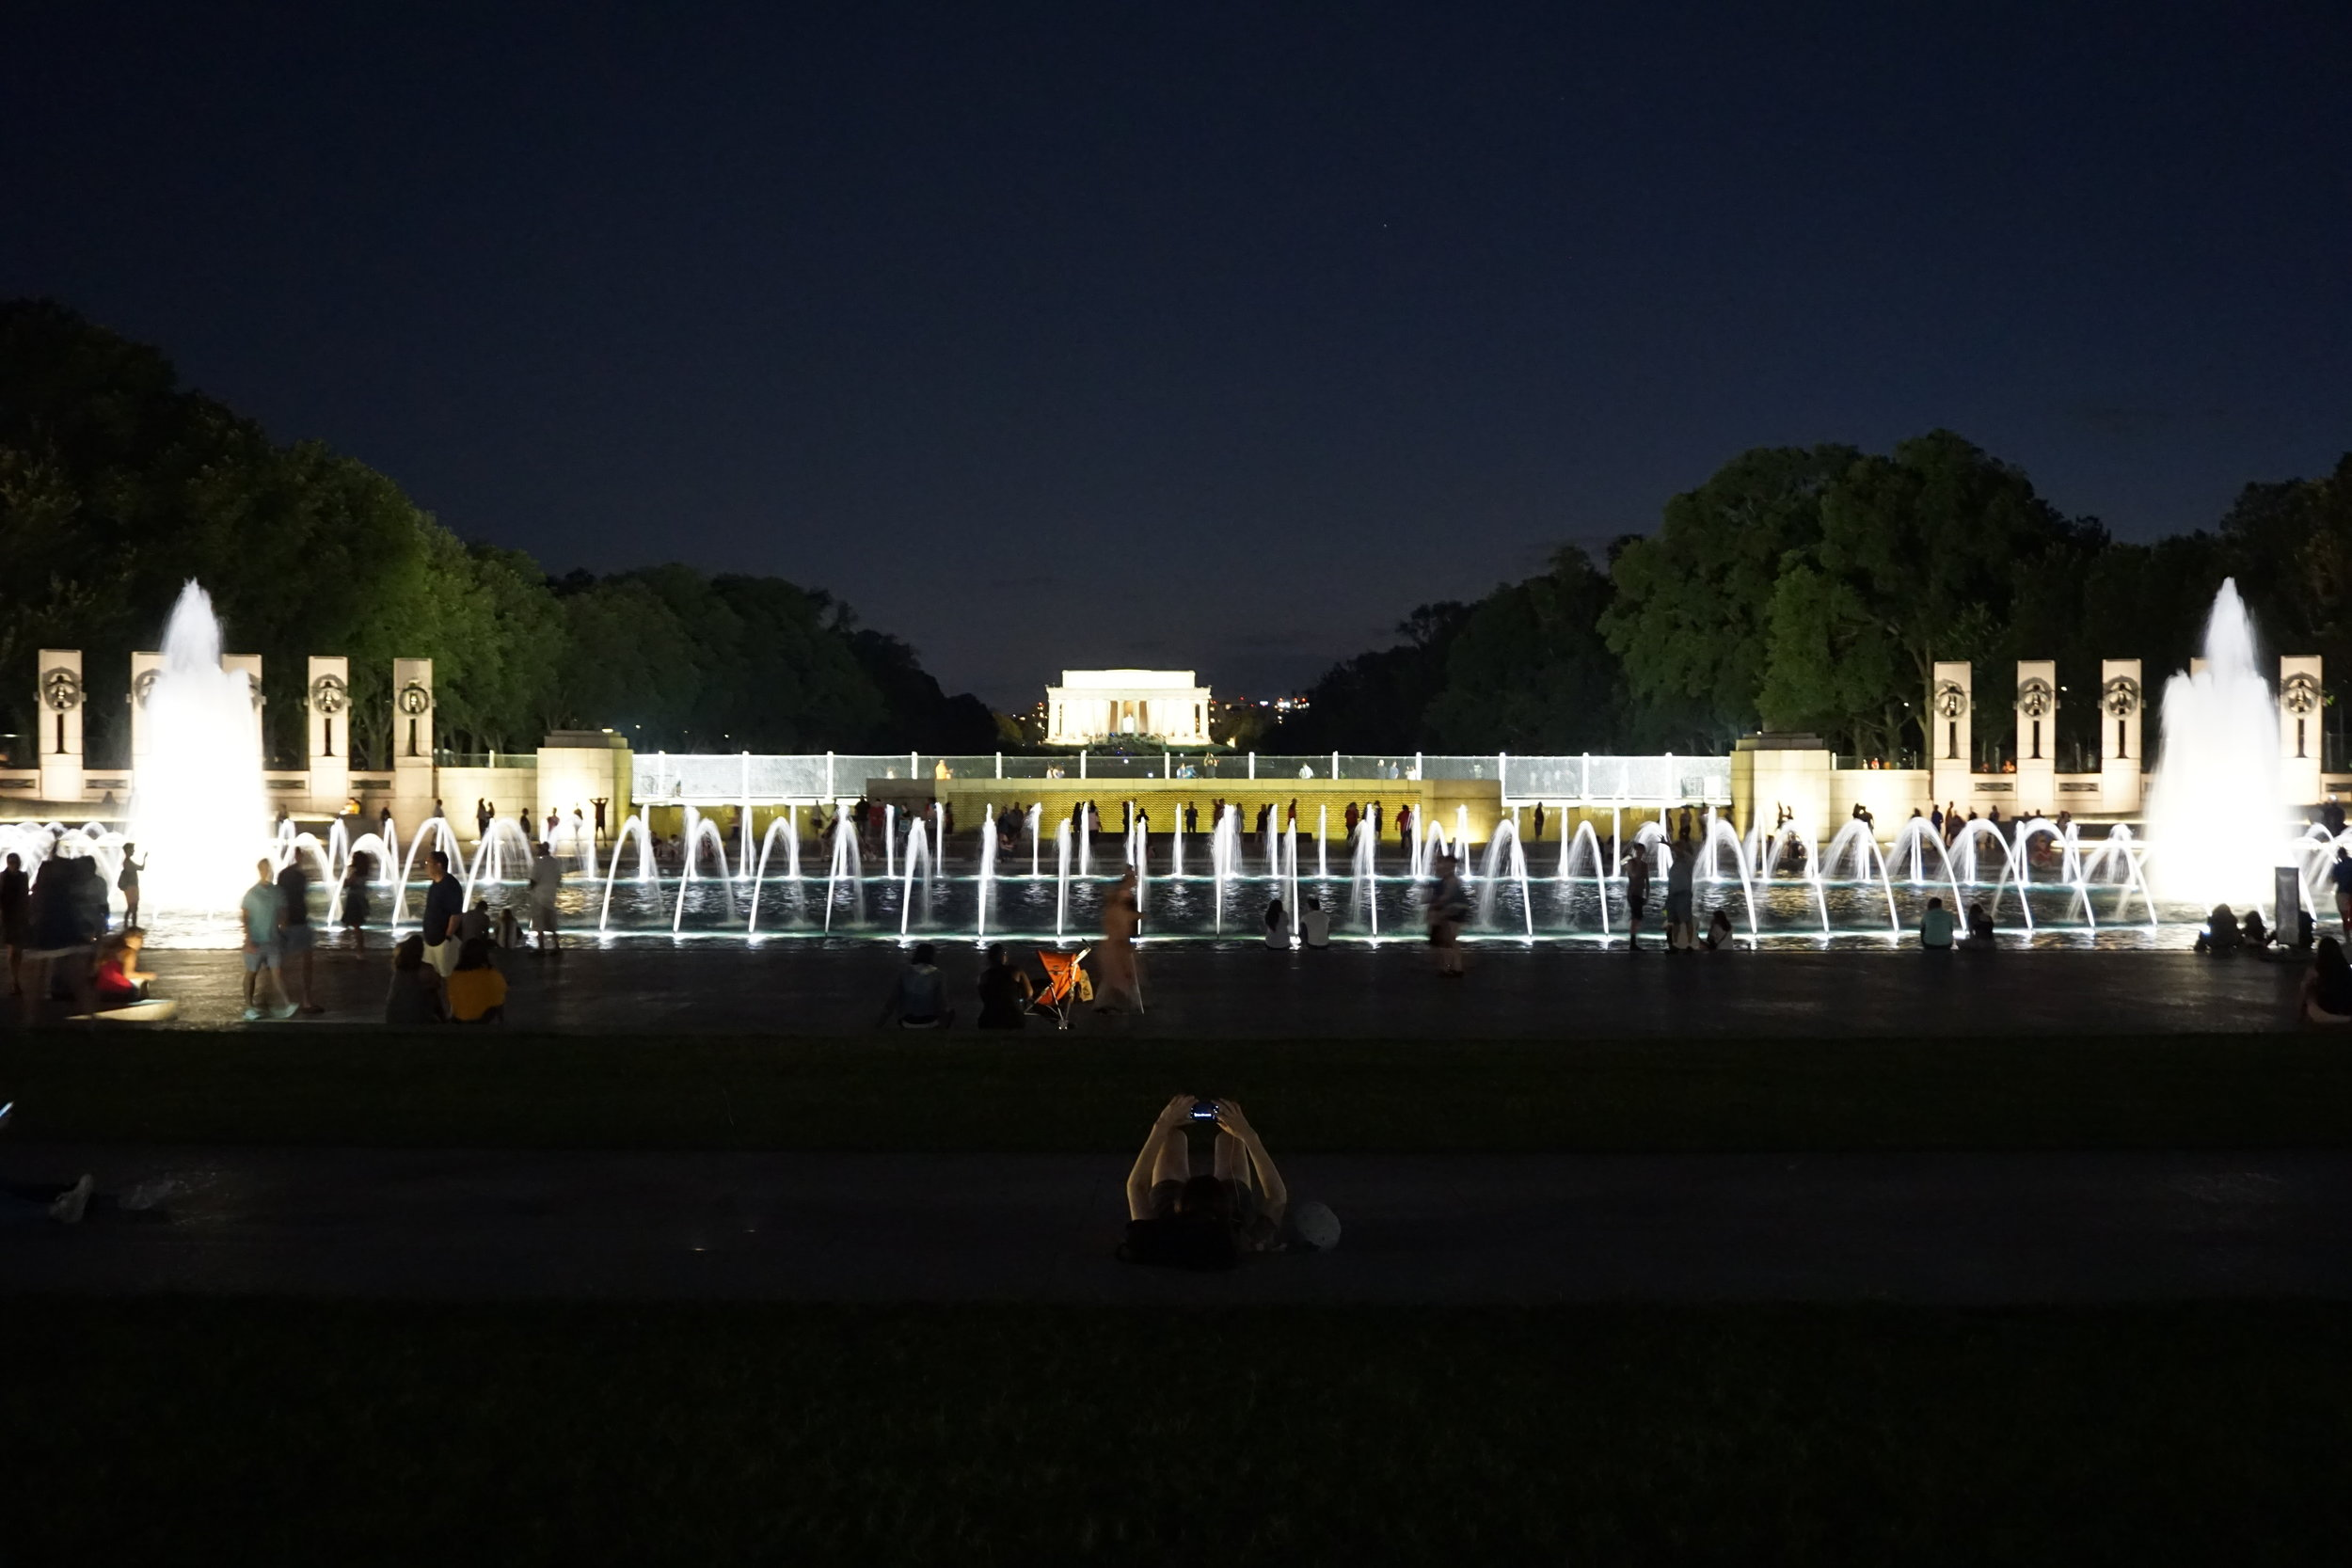 World War II Memorial at night, Washington DC